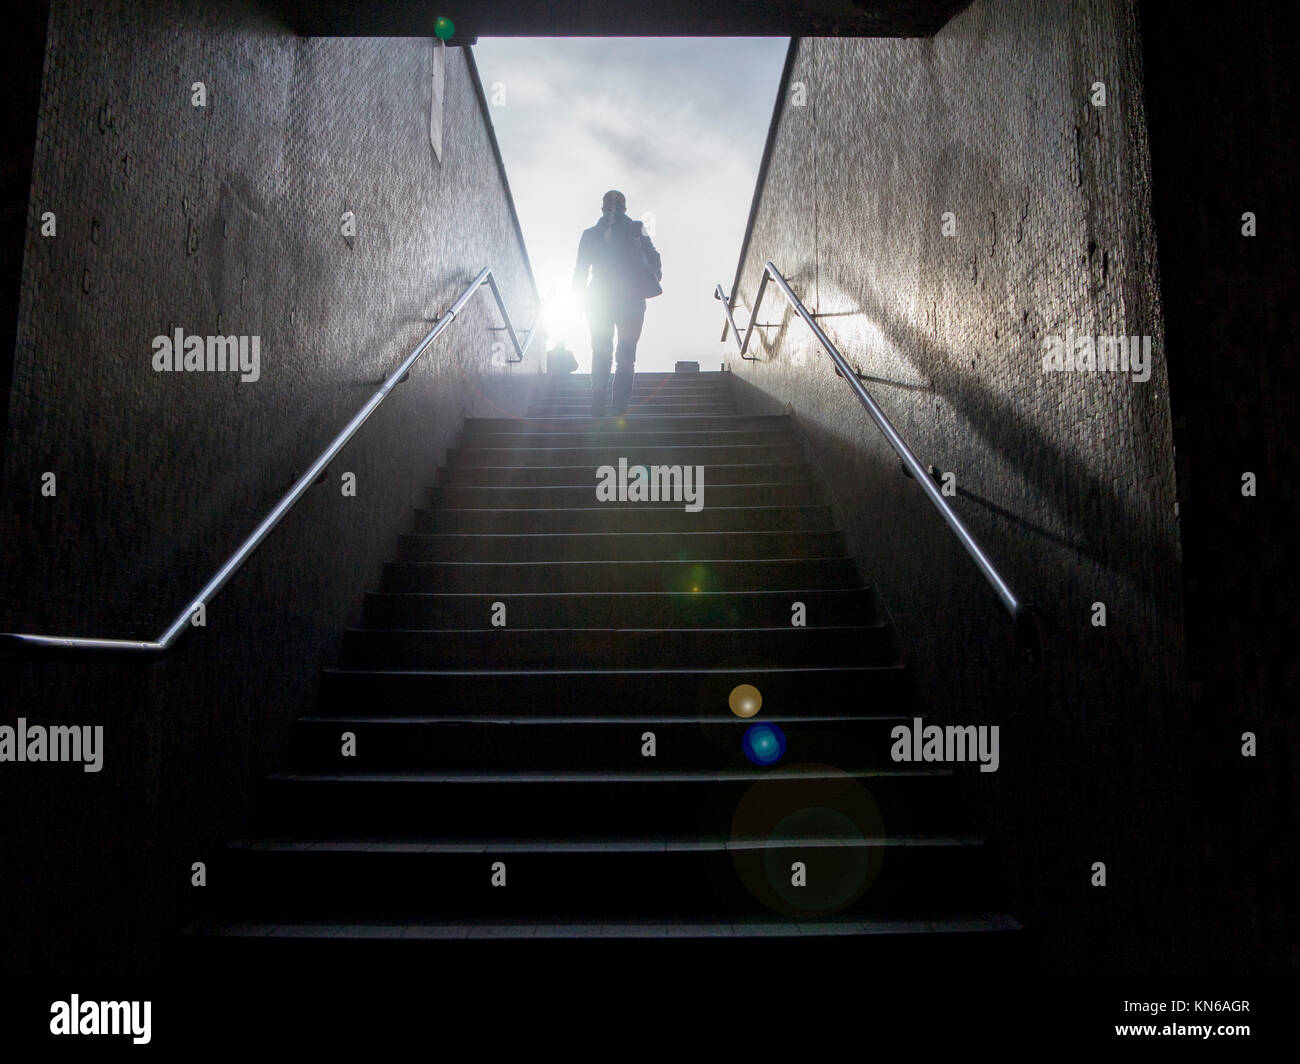 Ascending a staircase from under ground - Stock Image